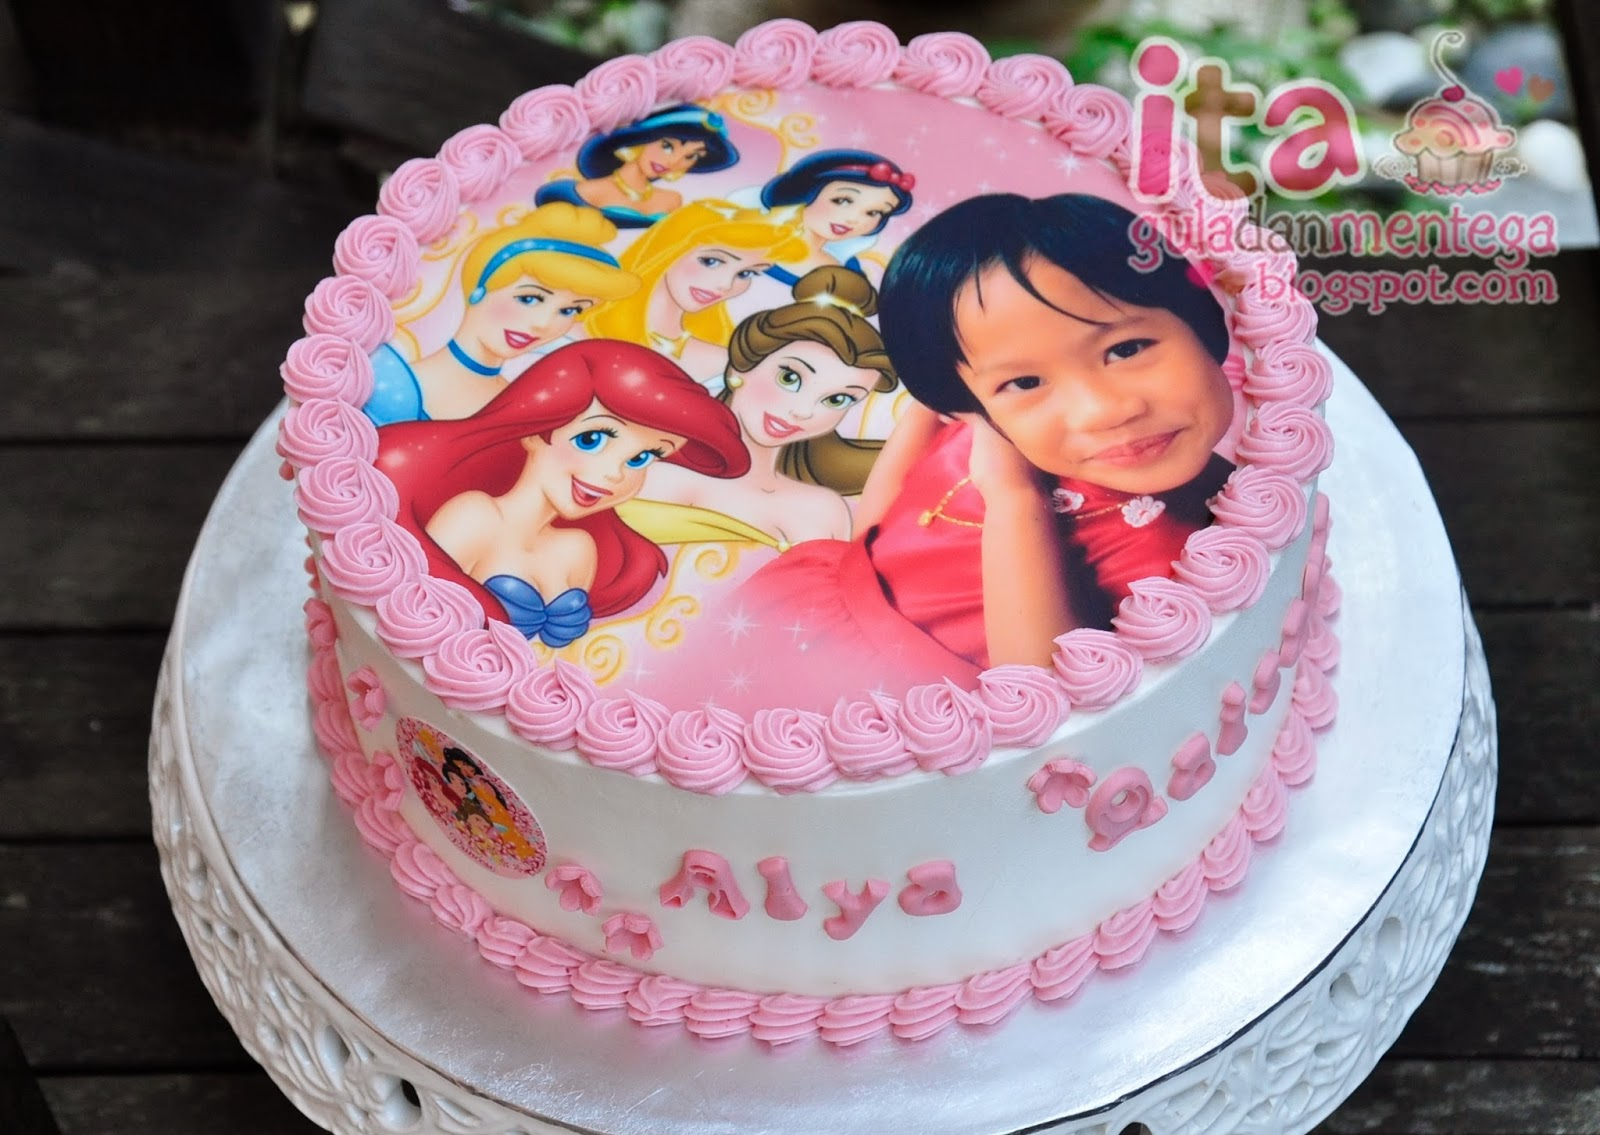 Gula Dan Mentega Birthday Cake Disney Princess